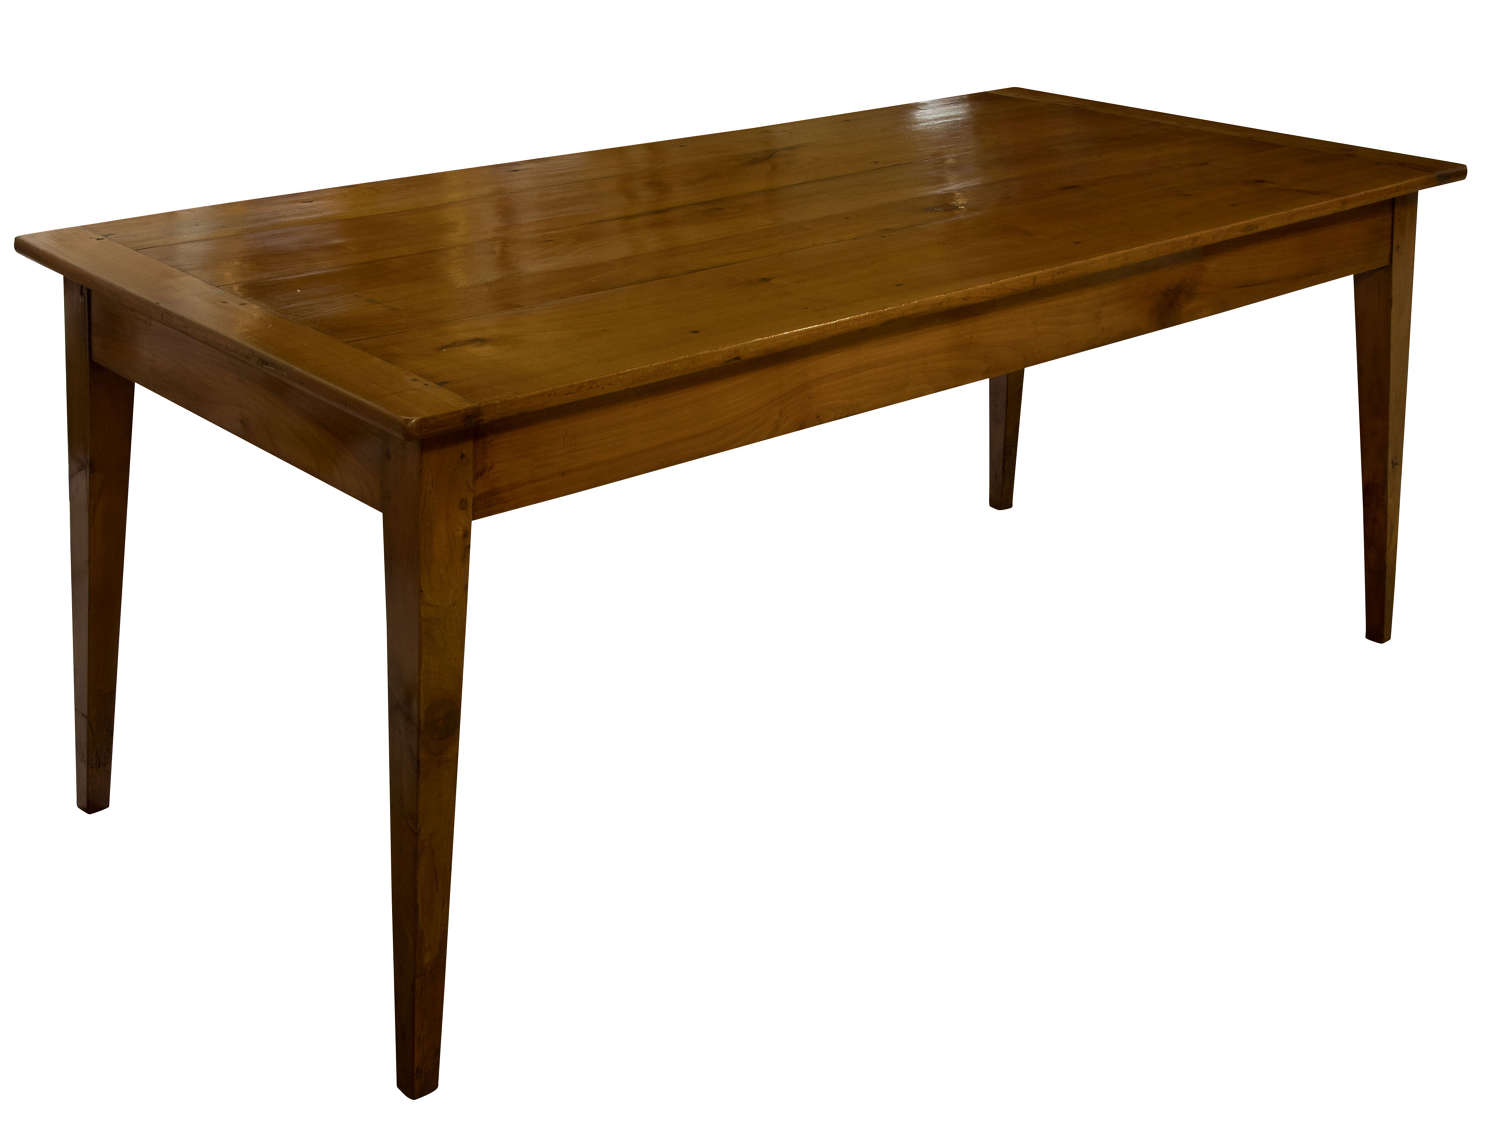 19thC French fruitwood farmhouse table of good size